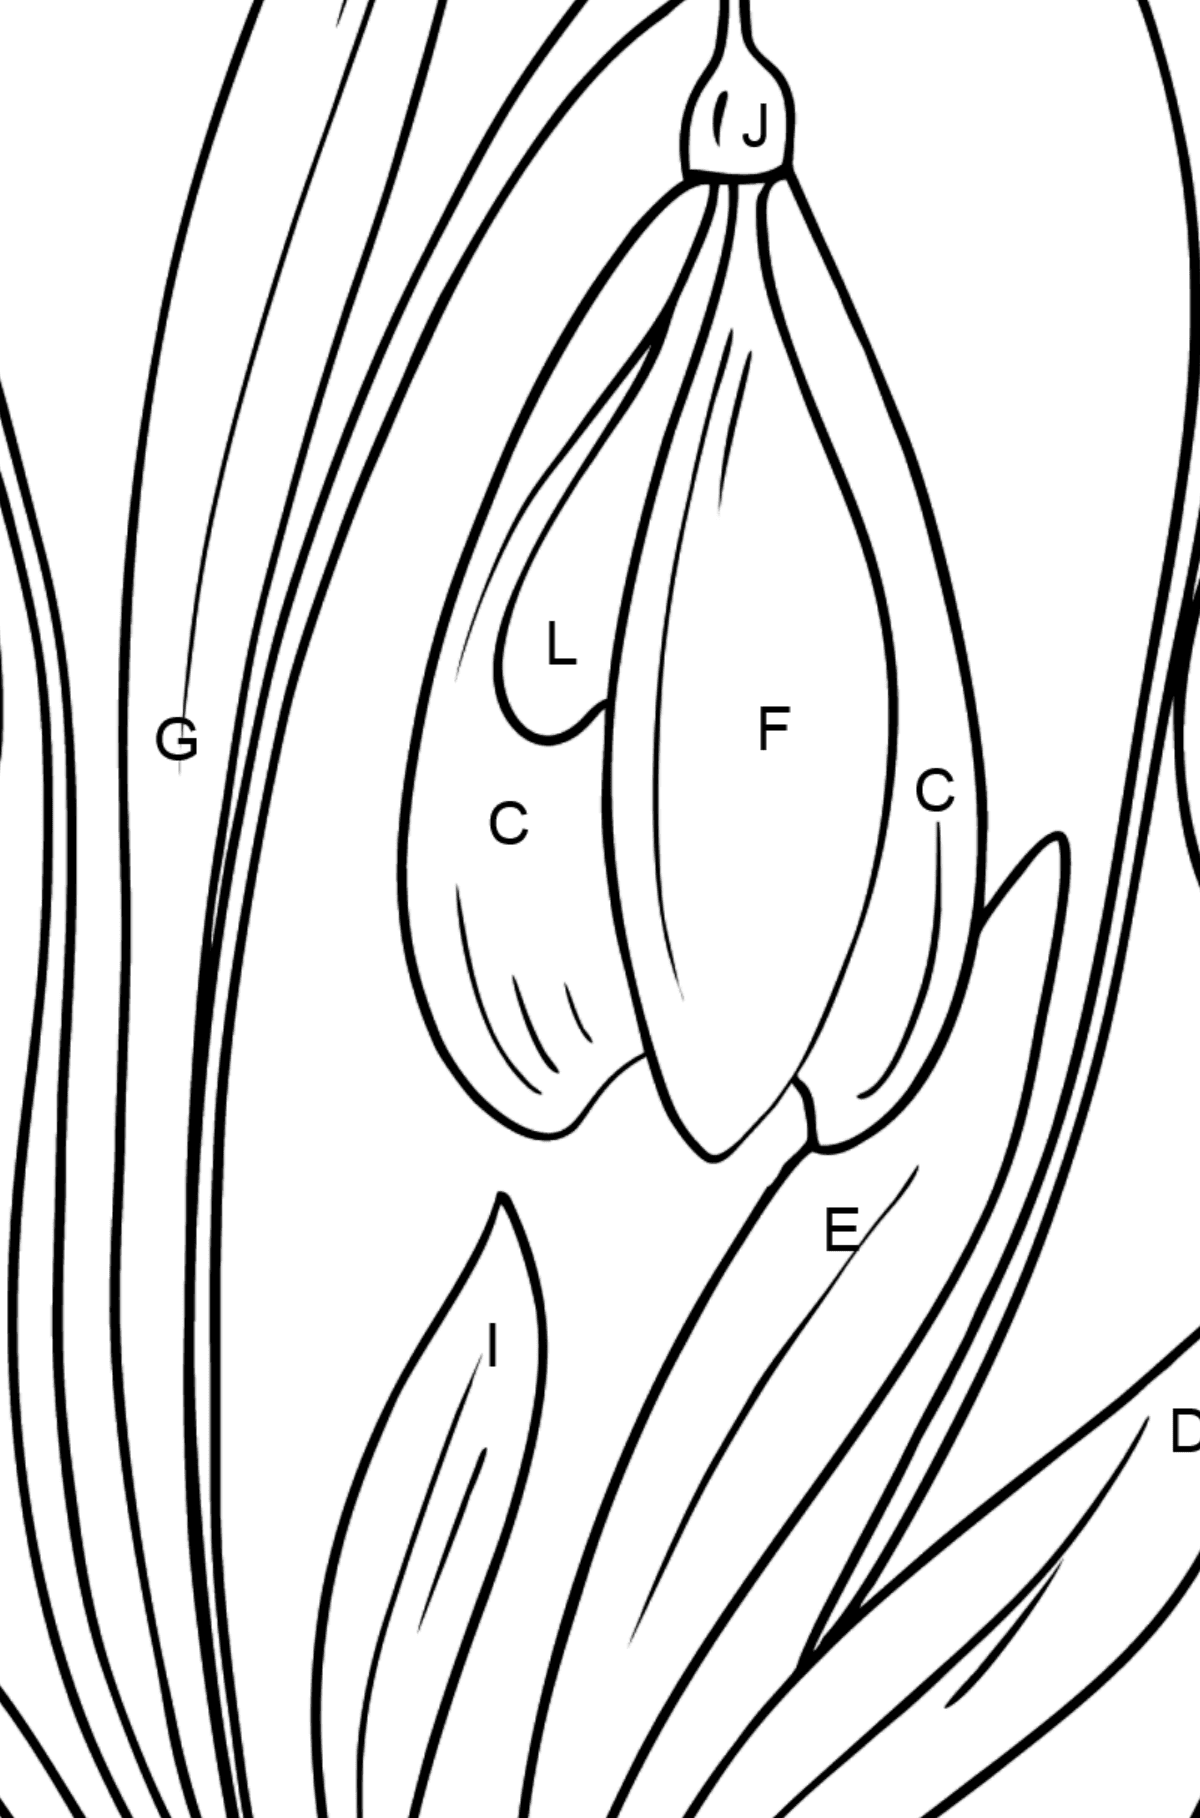 Snowdrops Coloring Page - Coloring by Letters for Kids